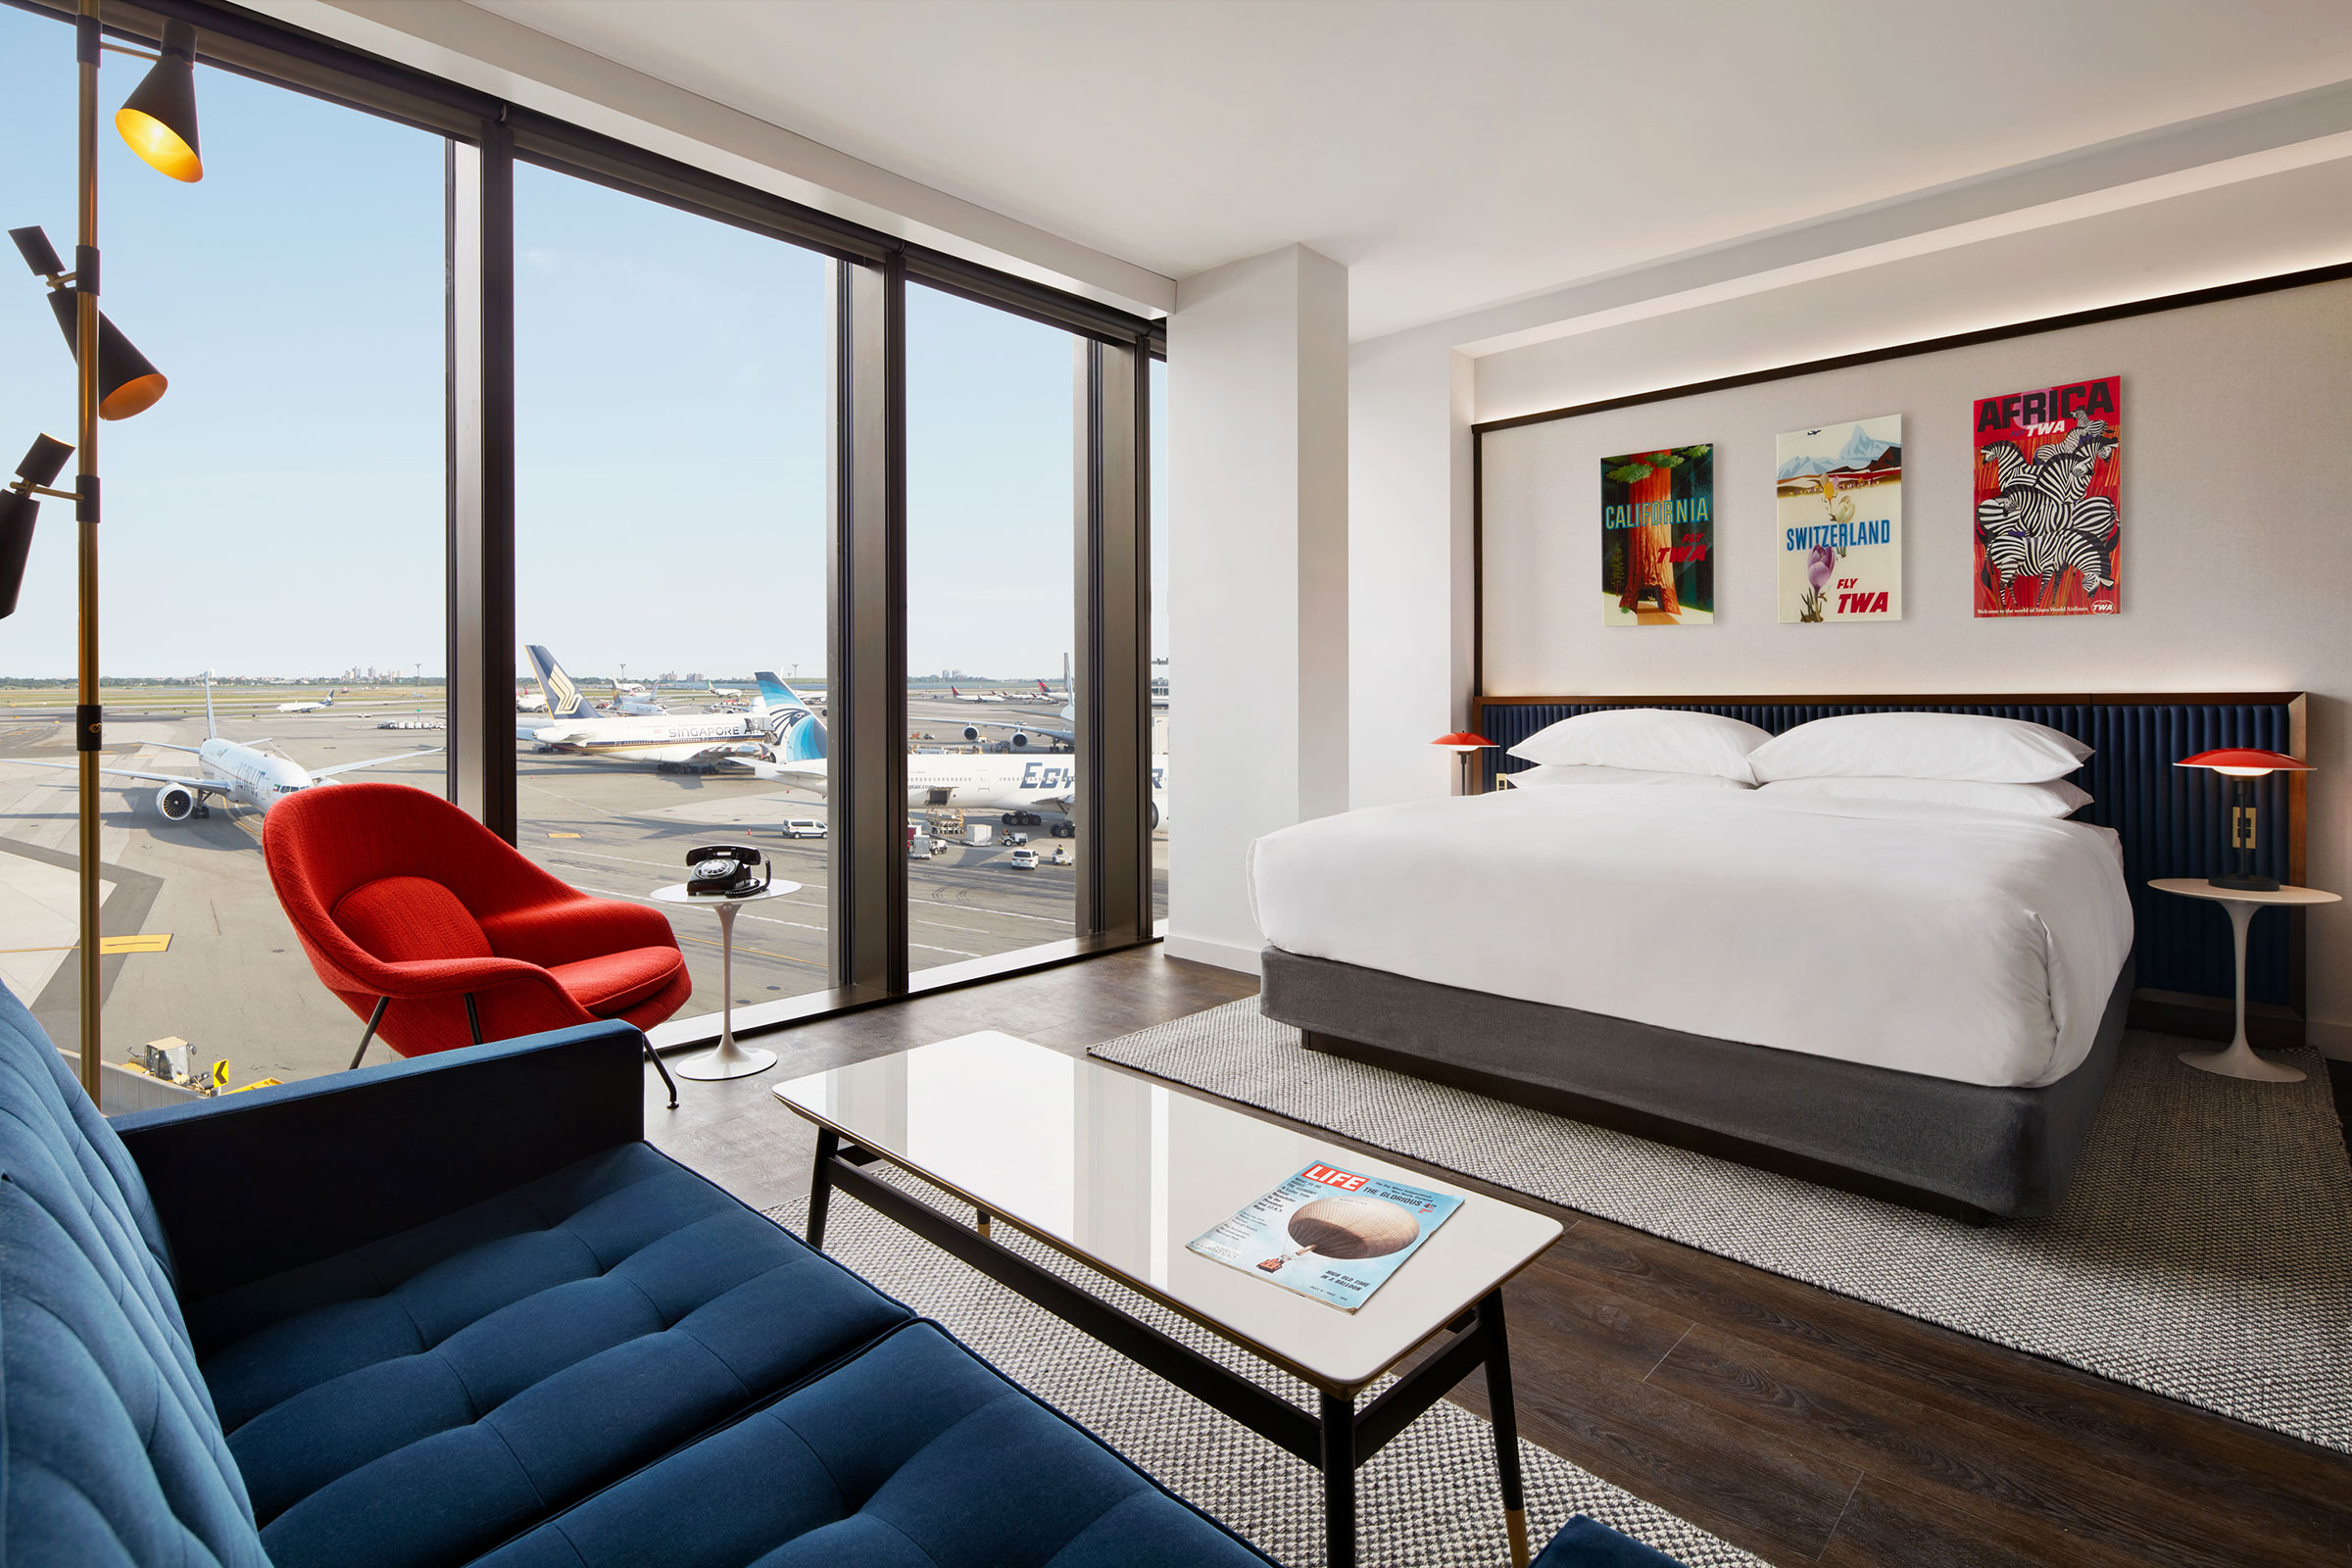 TWA Hotel Executive King Suite With Runway View